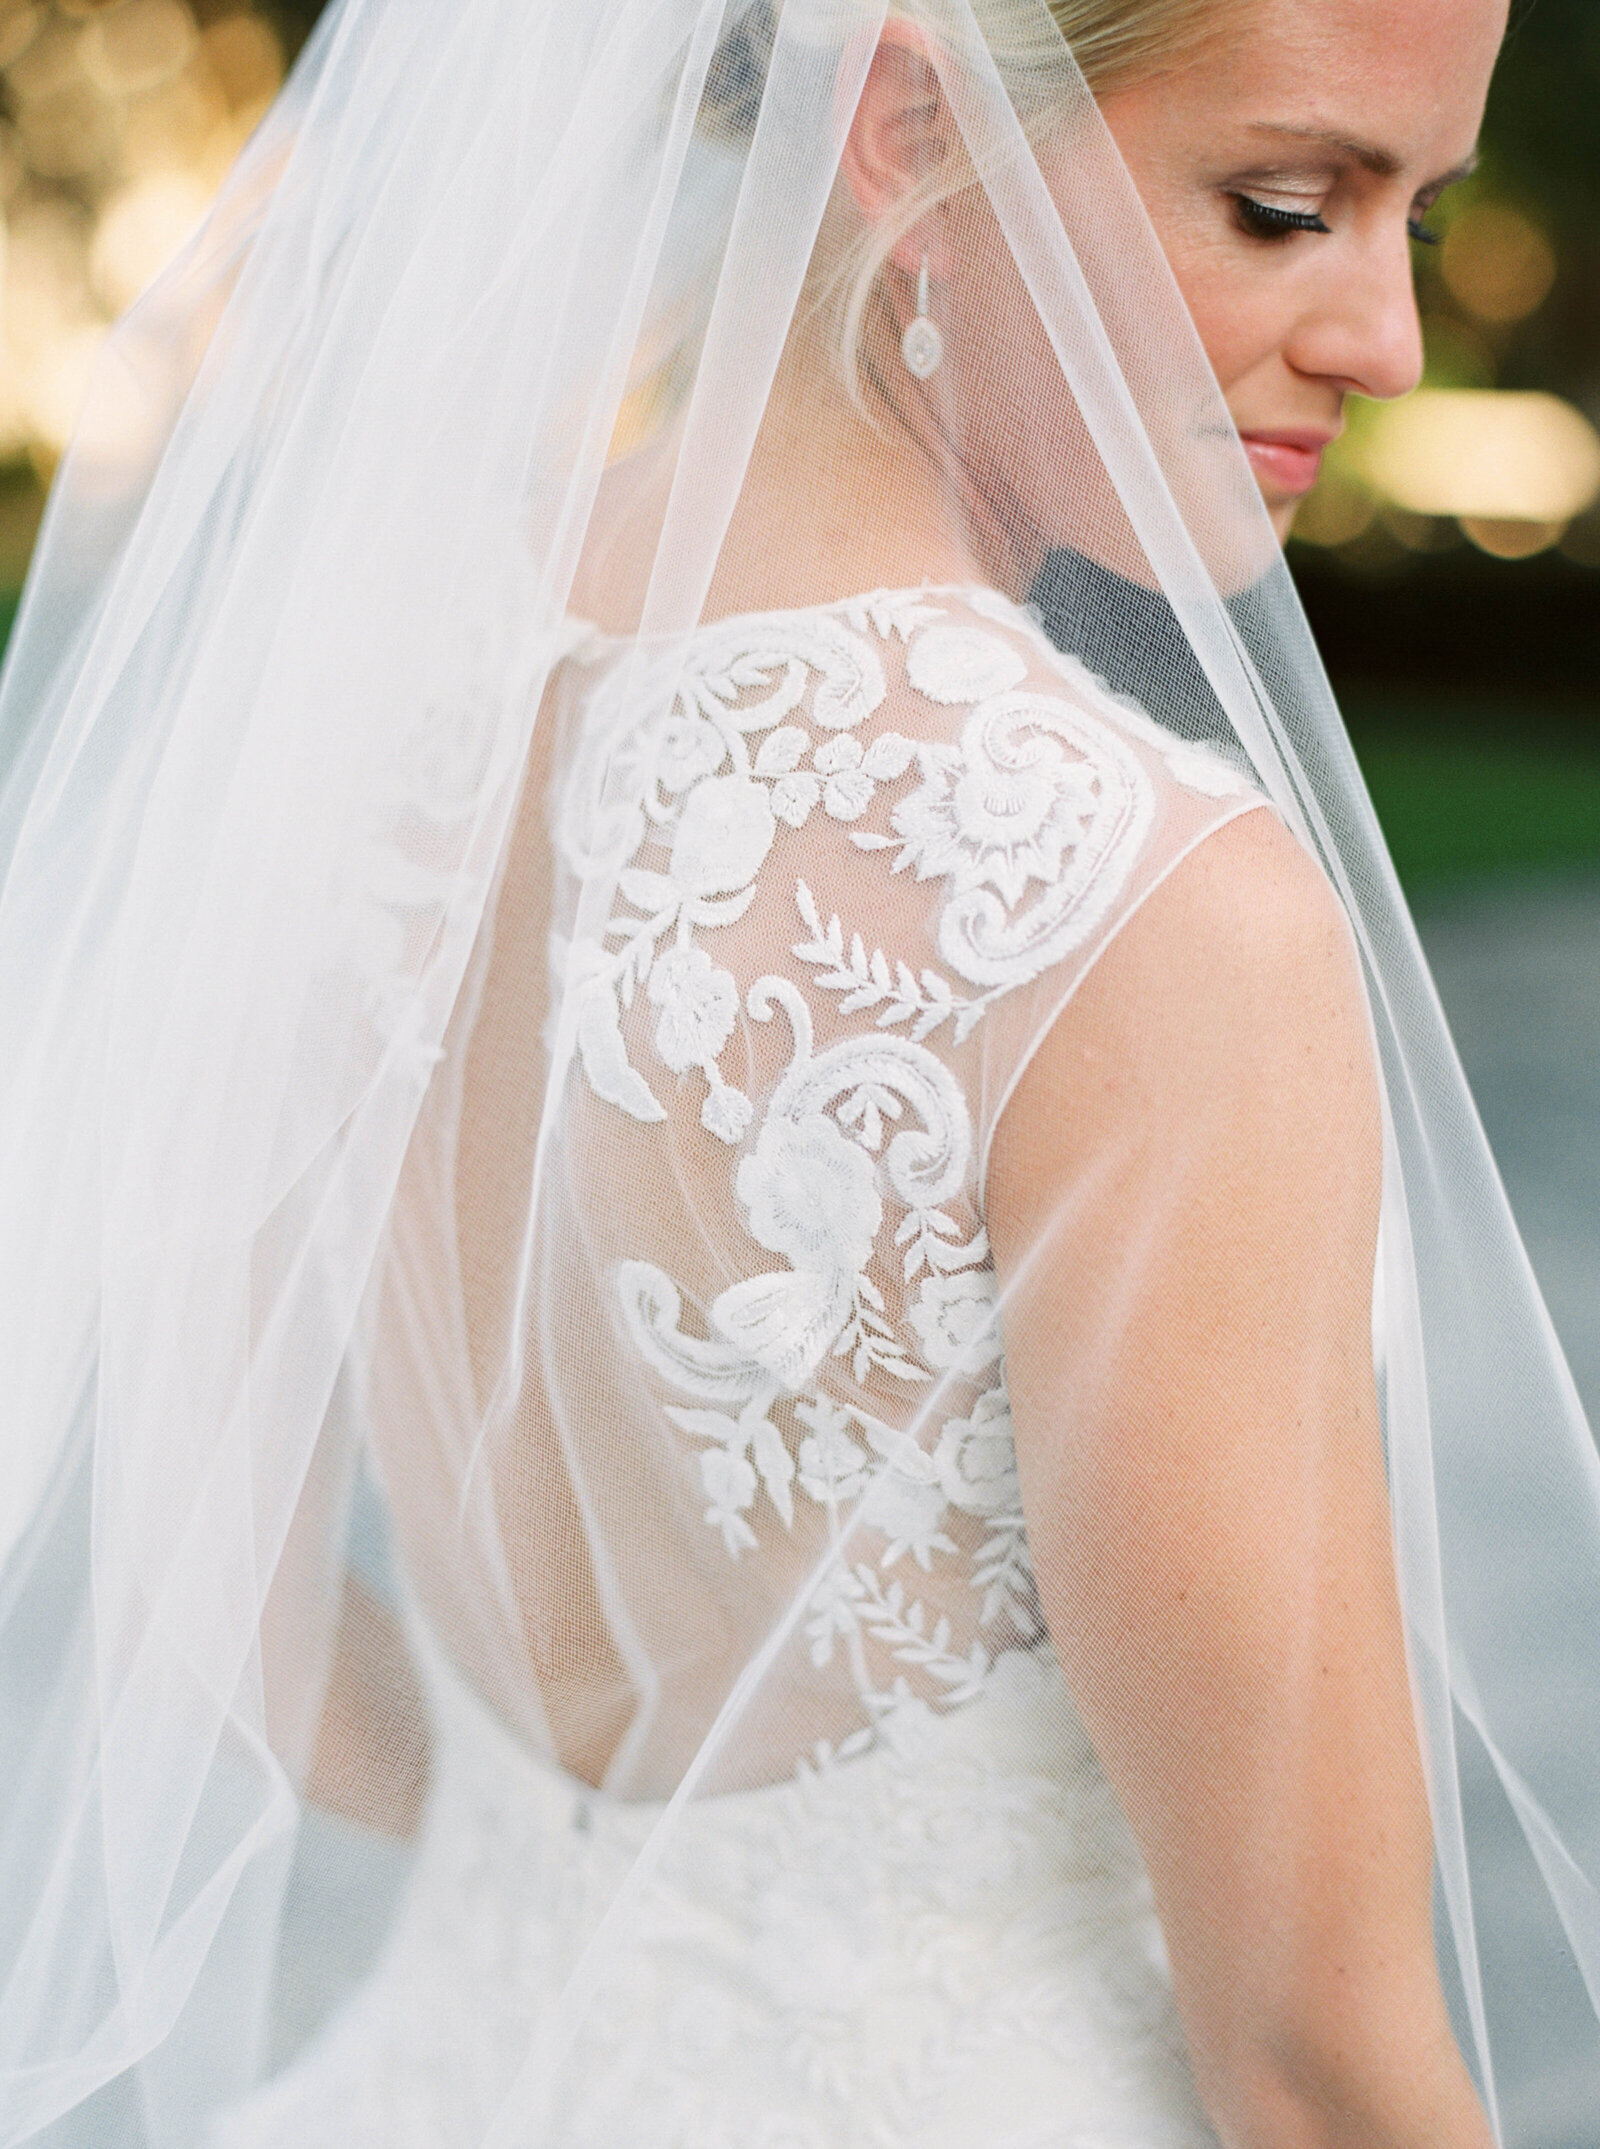 sarah kate photography dallas wedding photographer _0009